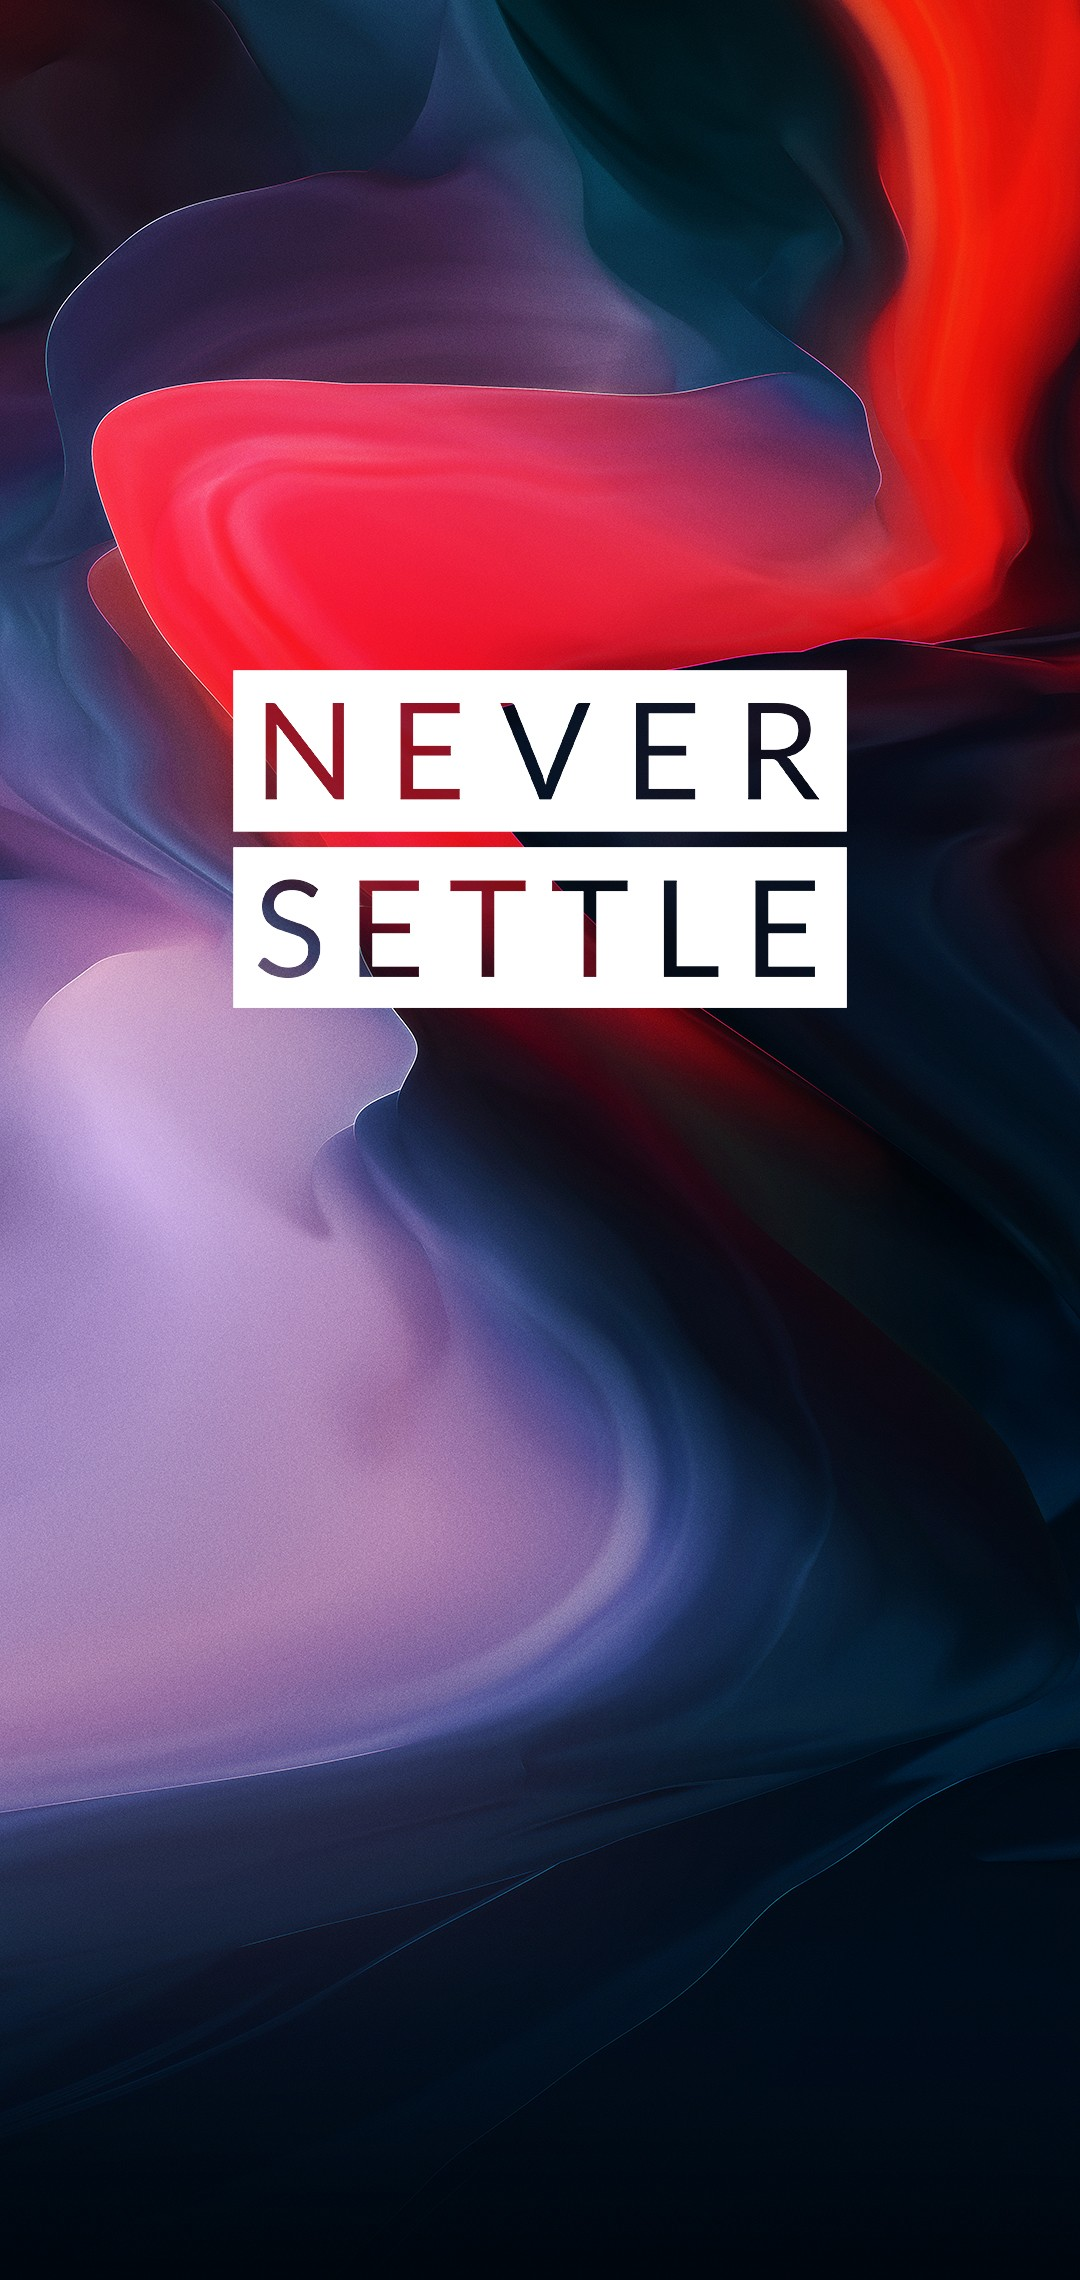 OnePlus 6 Never Settle Wallpaper 4 - [1080x2280]